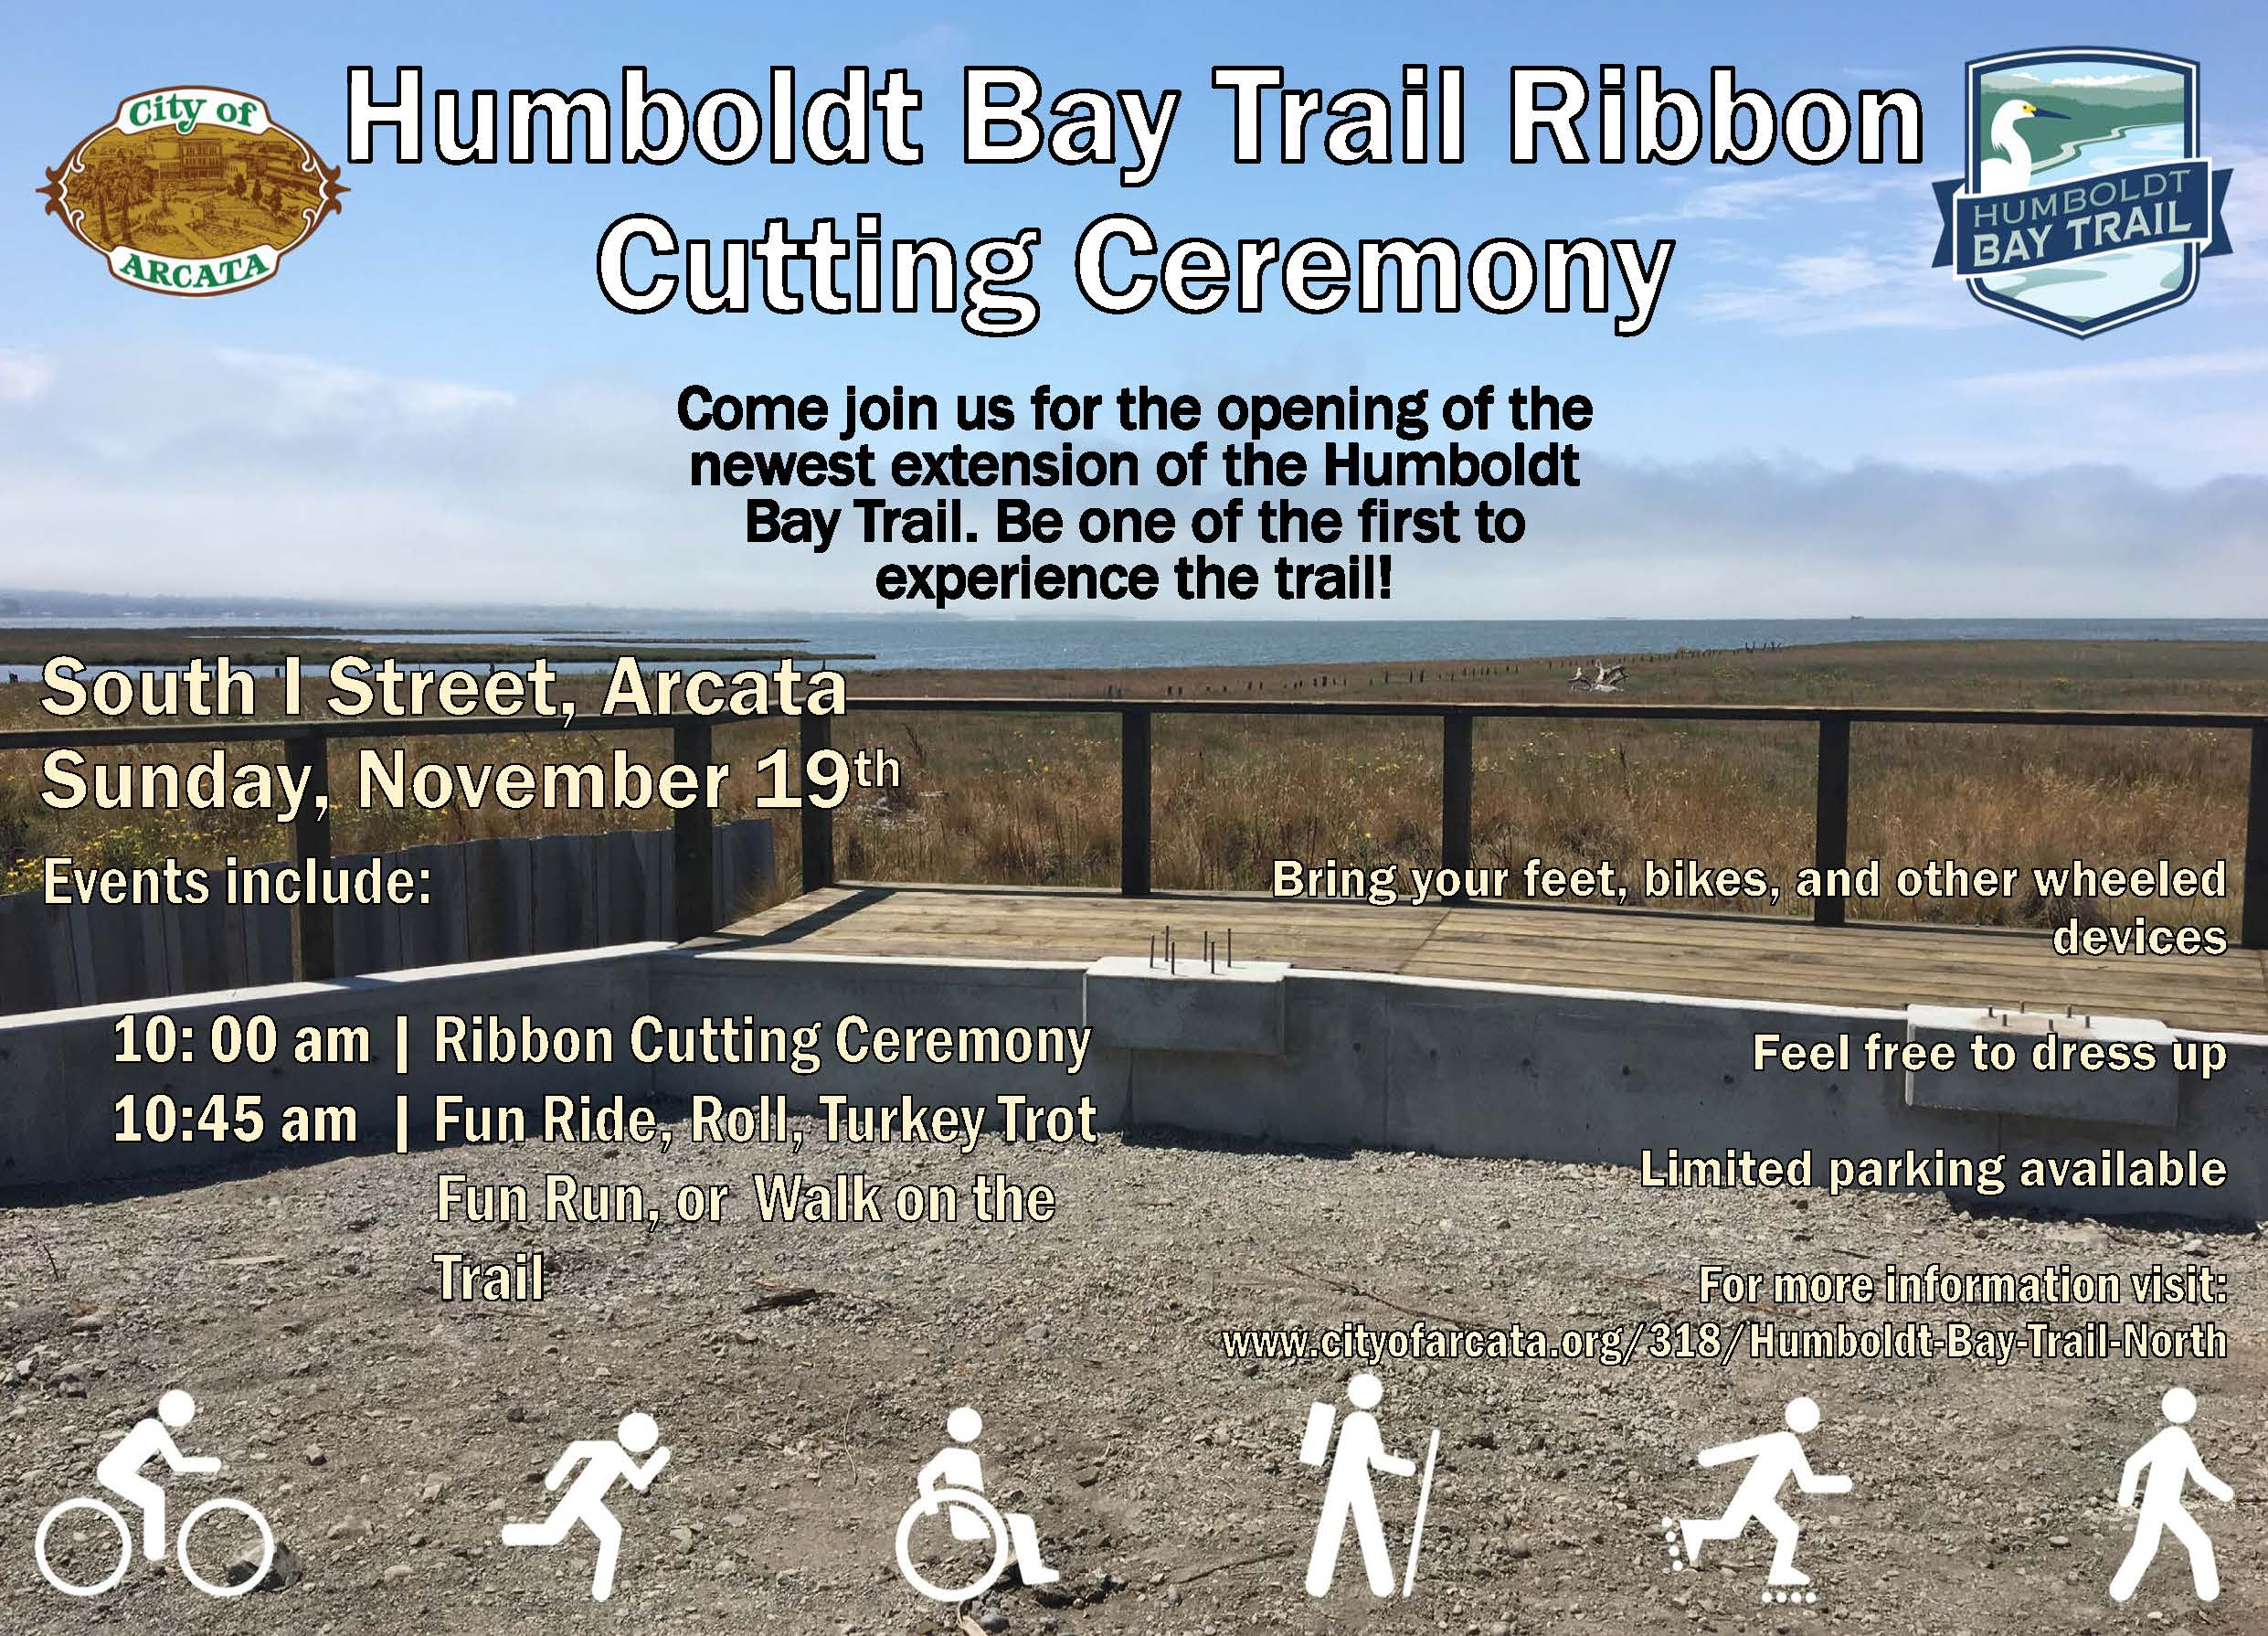 Humboldt Bay North Ribbon Cutting Ceremony Flyer